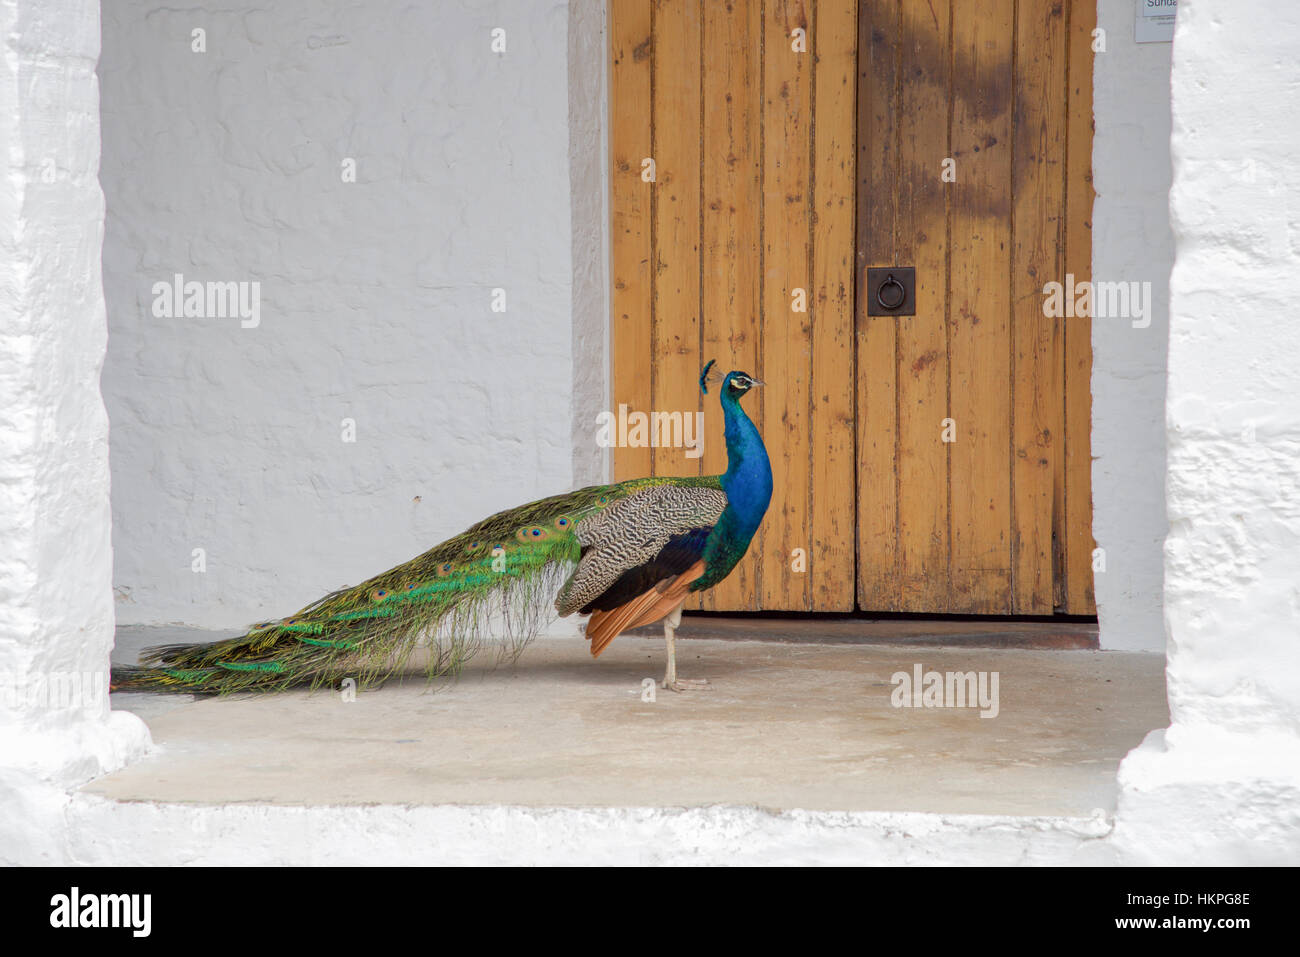 Colourful blue peafowl standing on porch in profile with